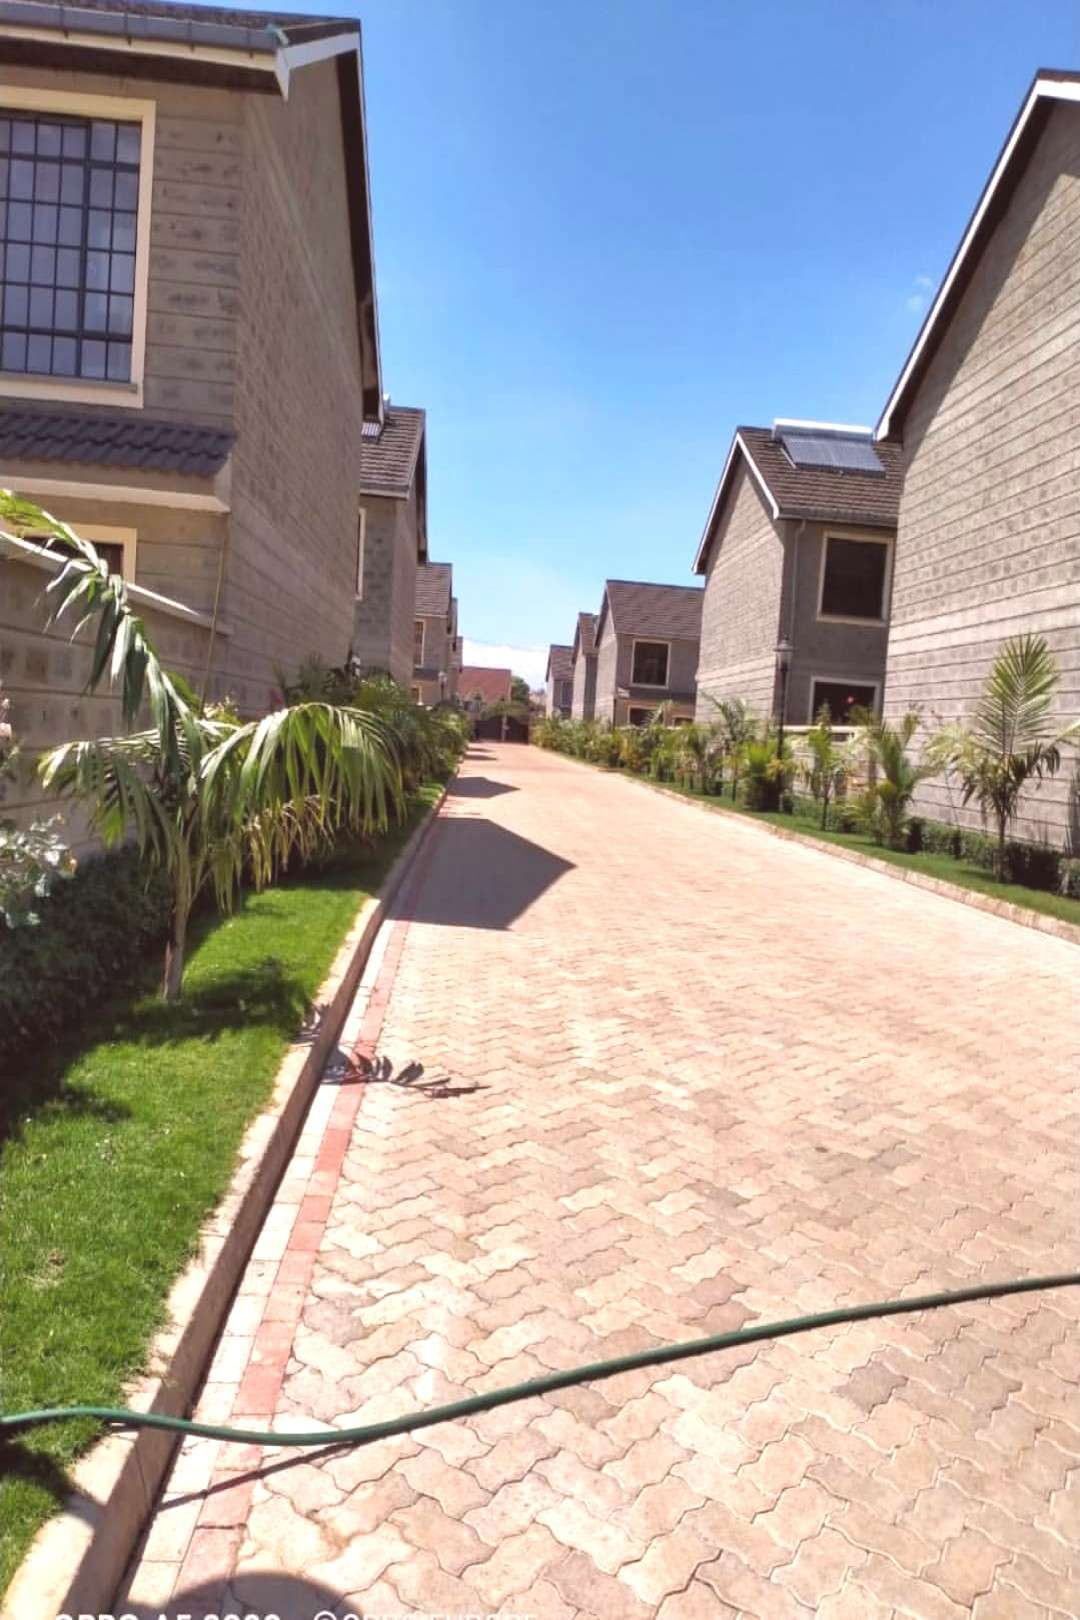 #4bedroom #detached #security #housesky #listing #outdoor #houses #24hrs #with #new #dsq #ser #and New listing! 4bedroom houses with detached DSQ 24hrs security SerYou can find Mortgage and more on our website.New list...